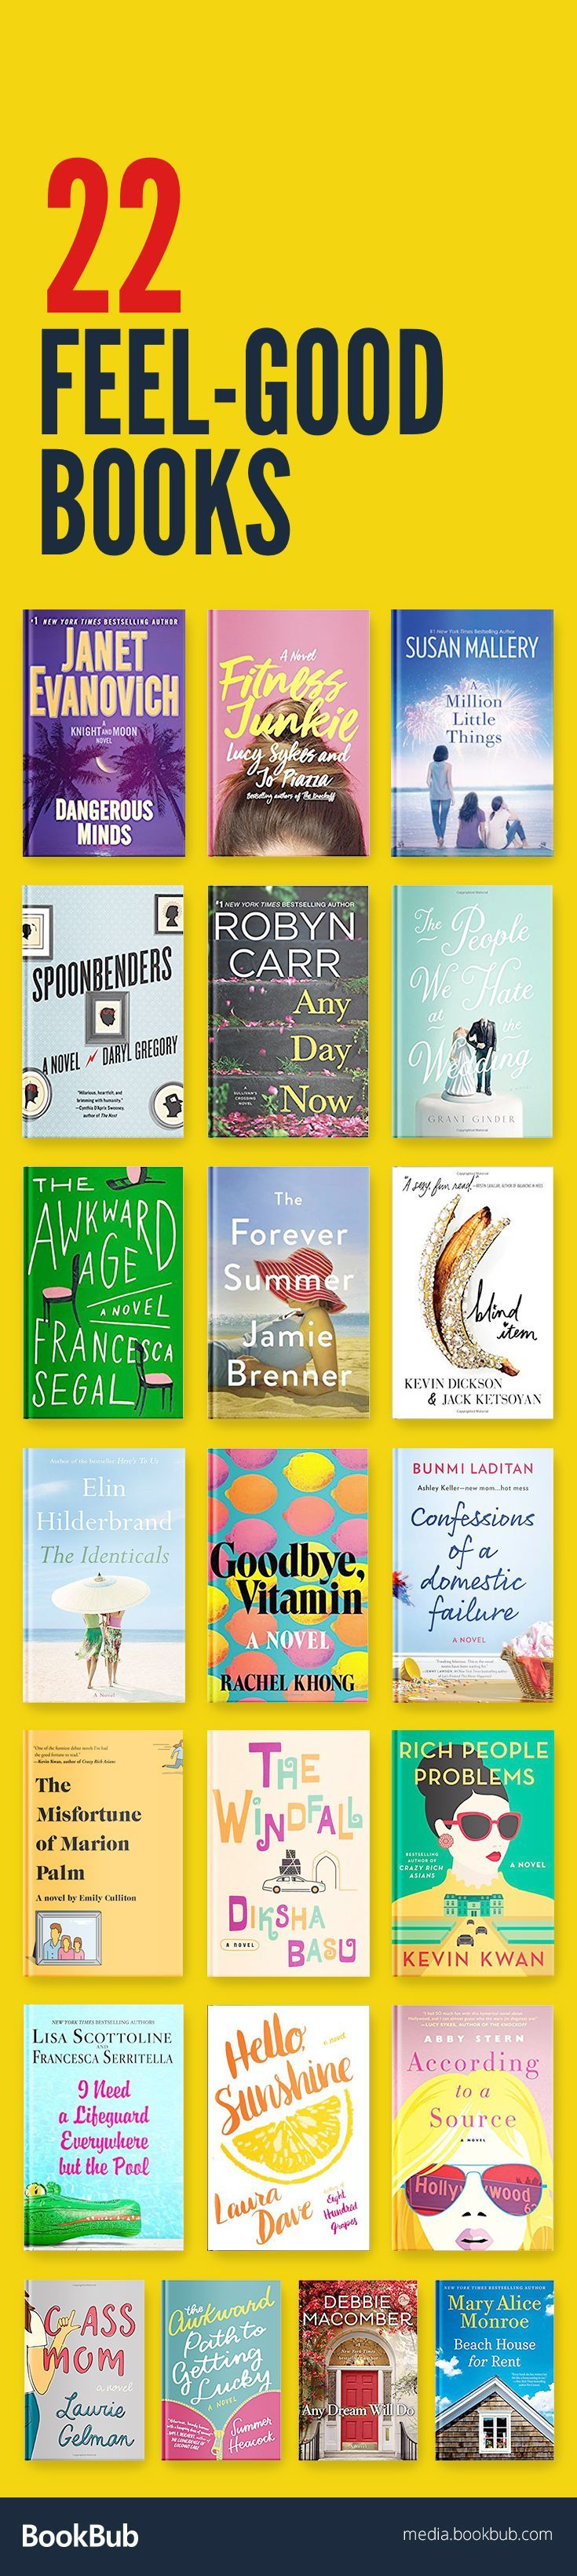 22 Feelgood Books To Read On A Rainy Day